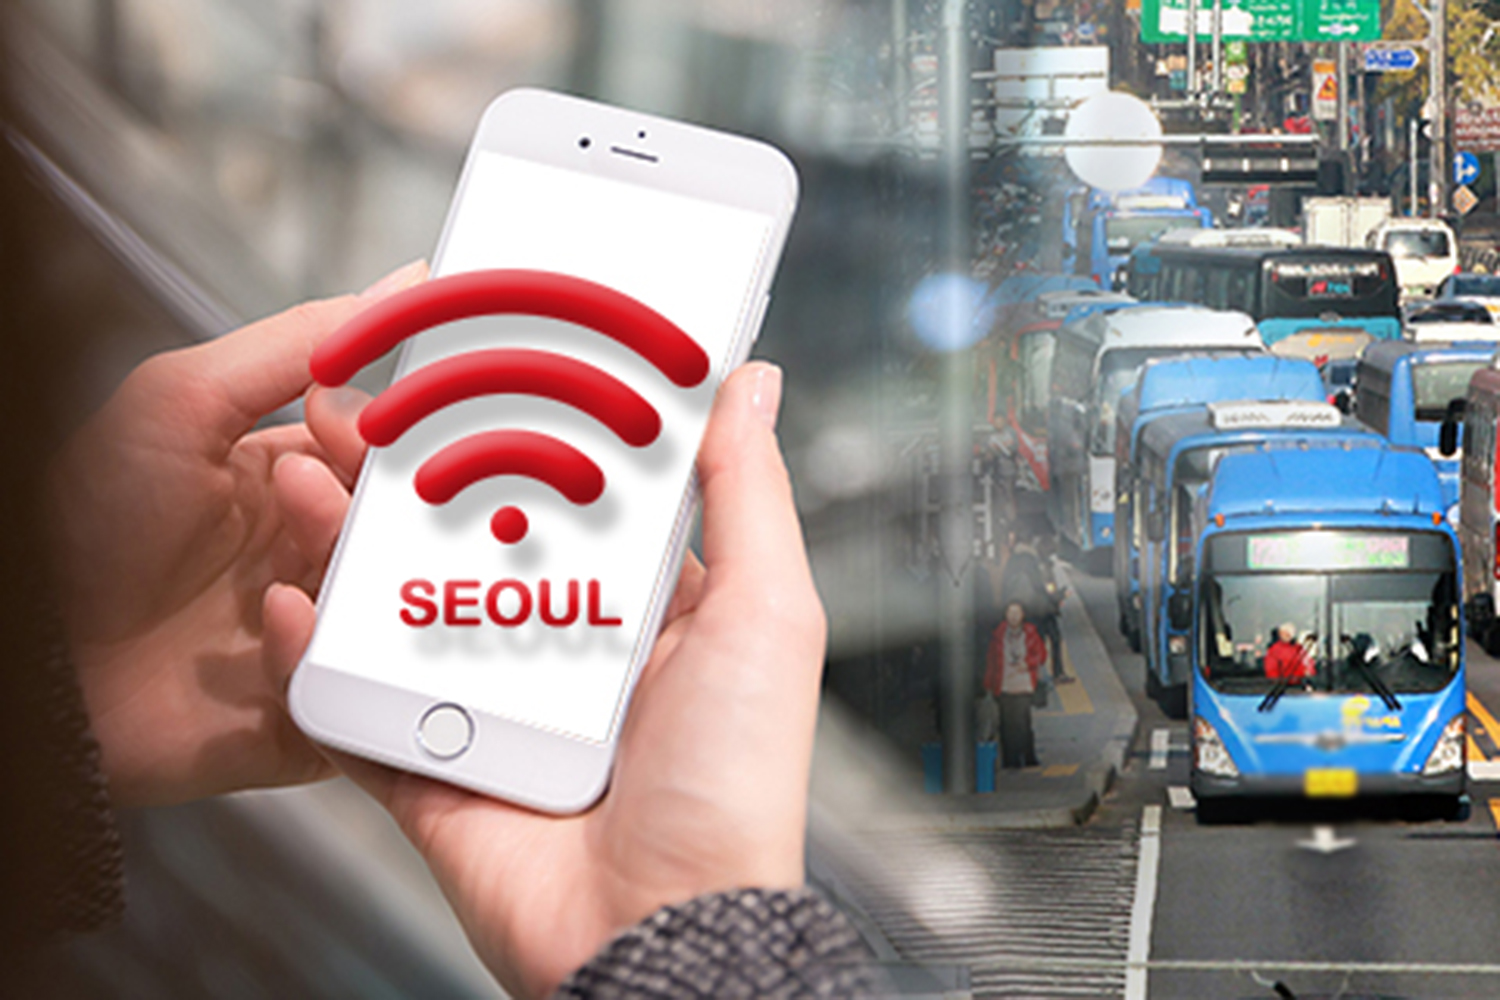 Wi-Fi becomes free in public buses, parks in Seoul next year